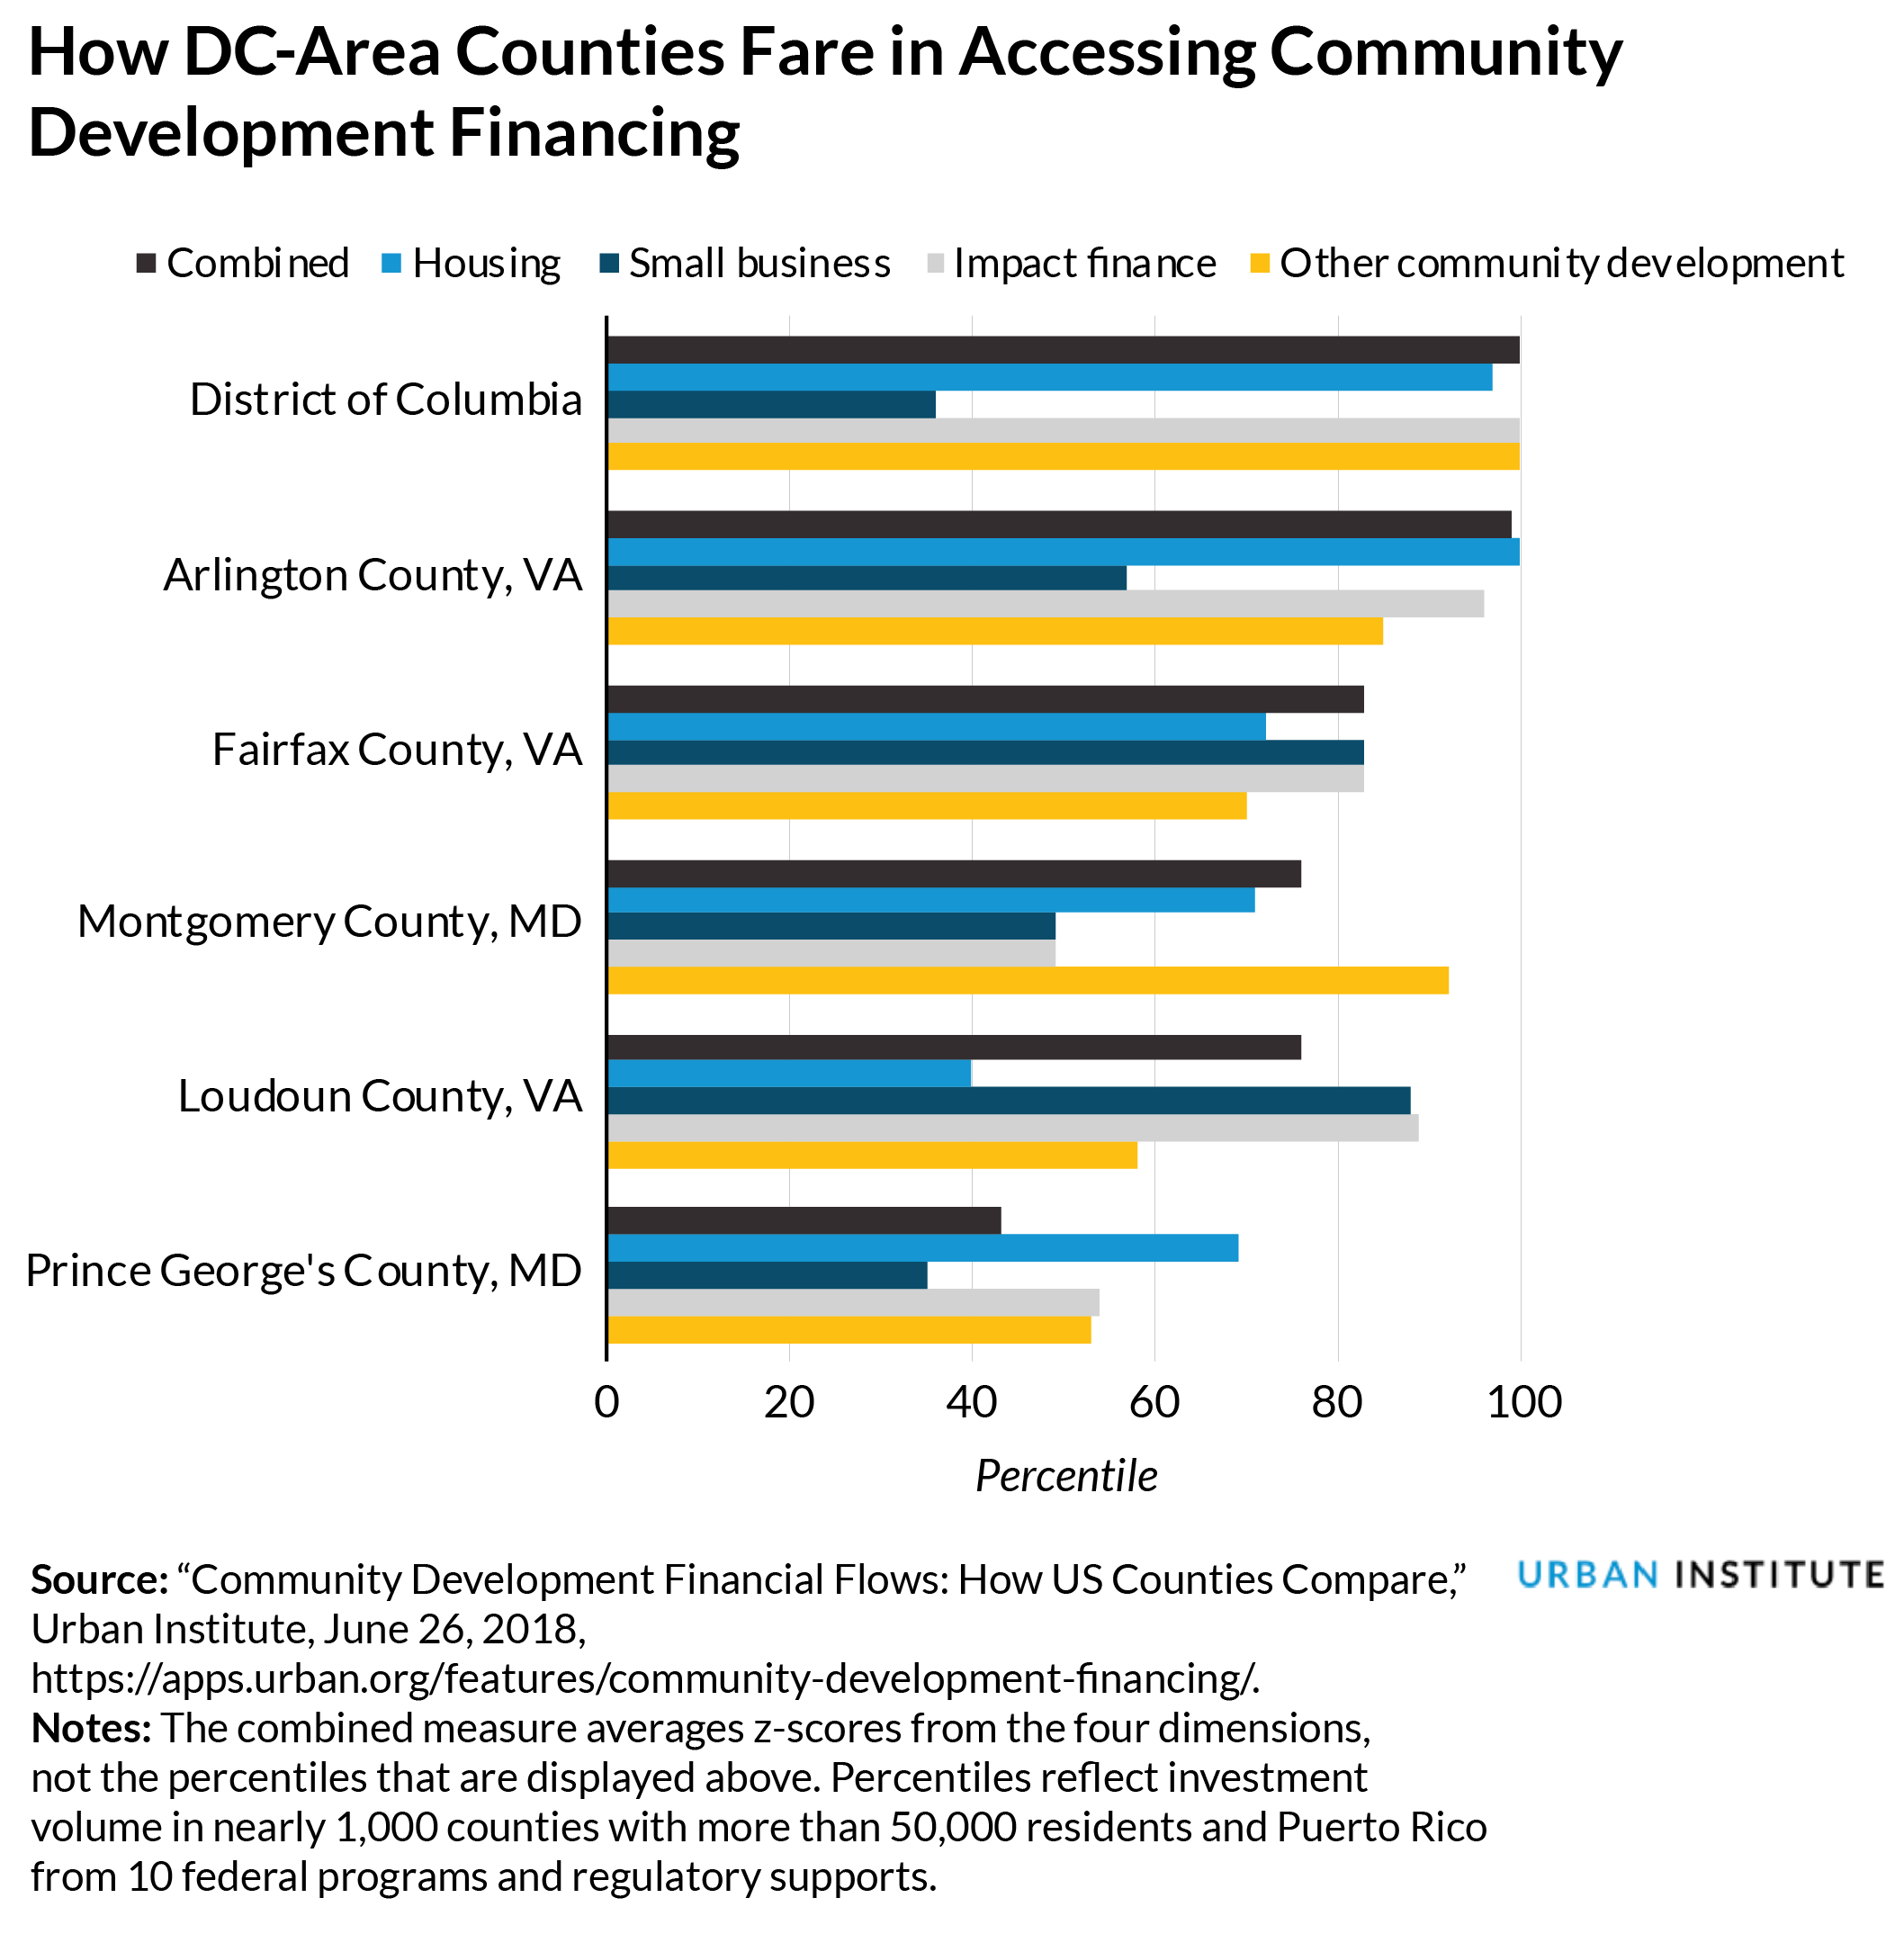 How DC-Area Counties Fare in Accessing Community Development Financing